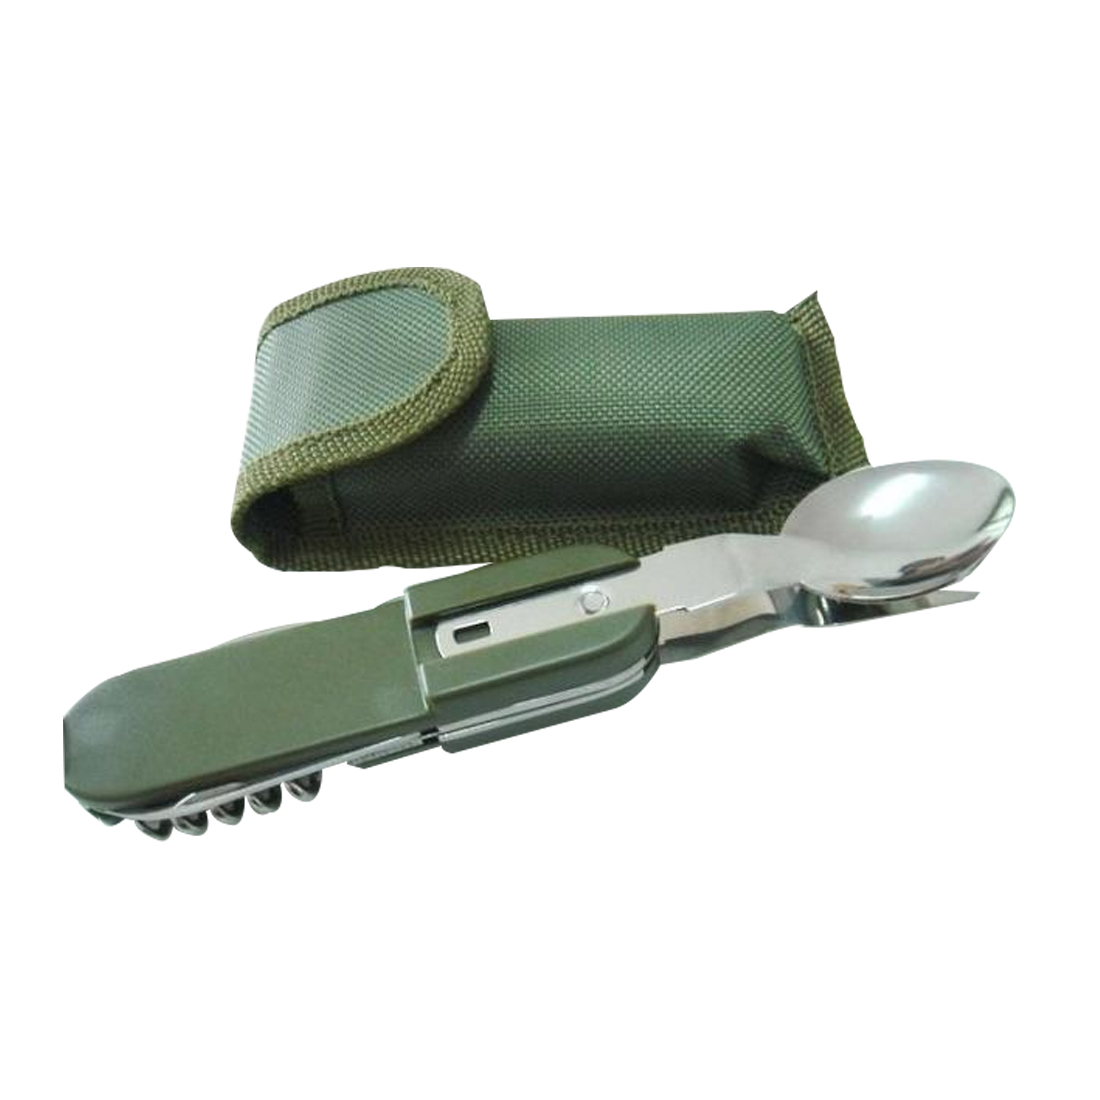 Camping Equipment	 Army Green Folding Portable Stainless Steel Camping Picnic Cutlery Knife Fork Spoon Bottle Opener